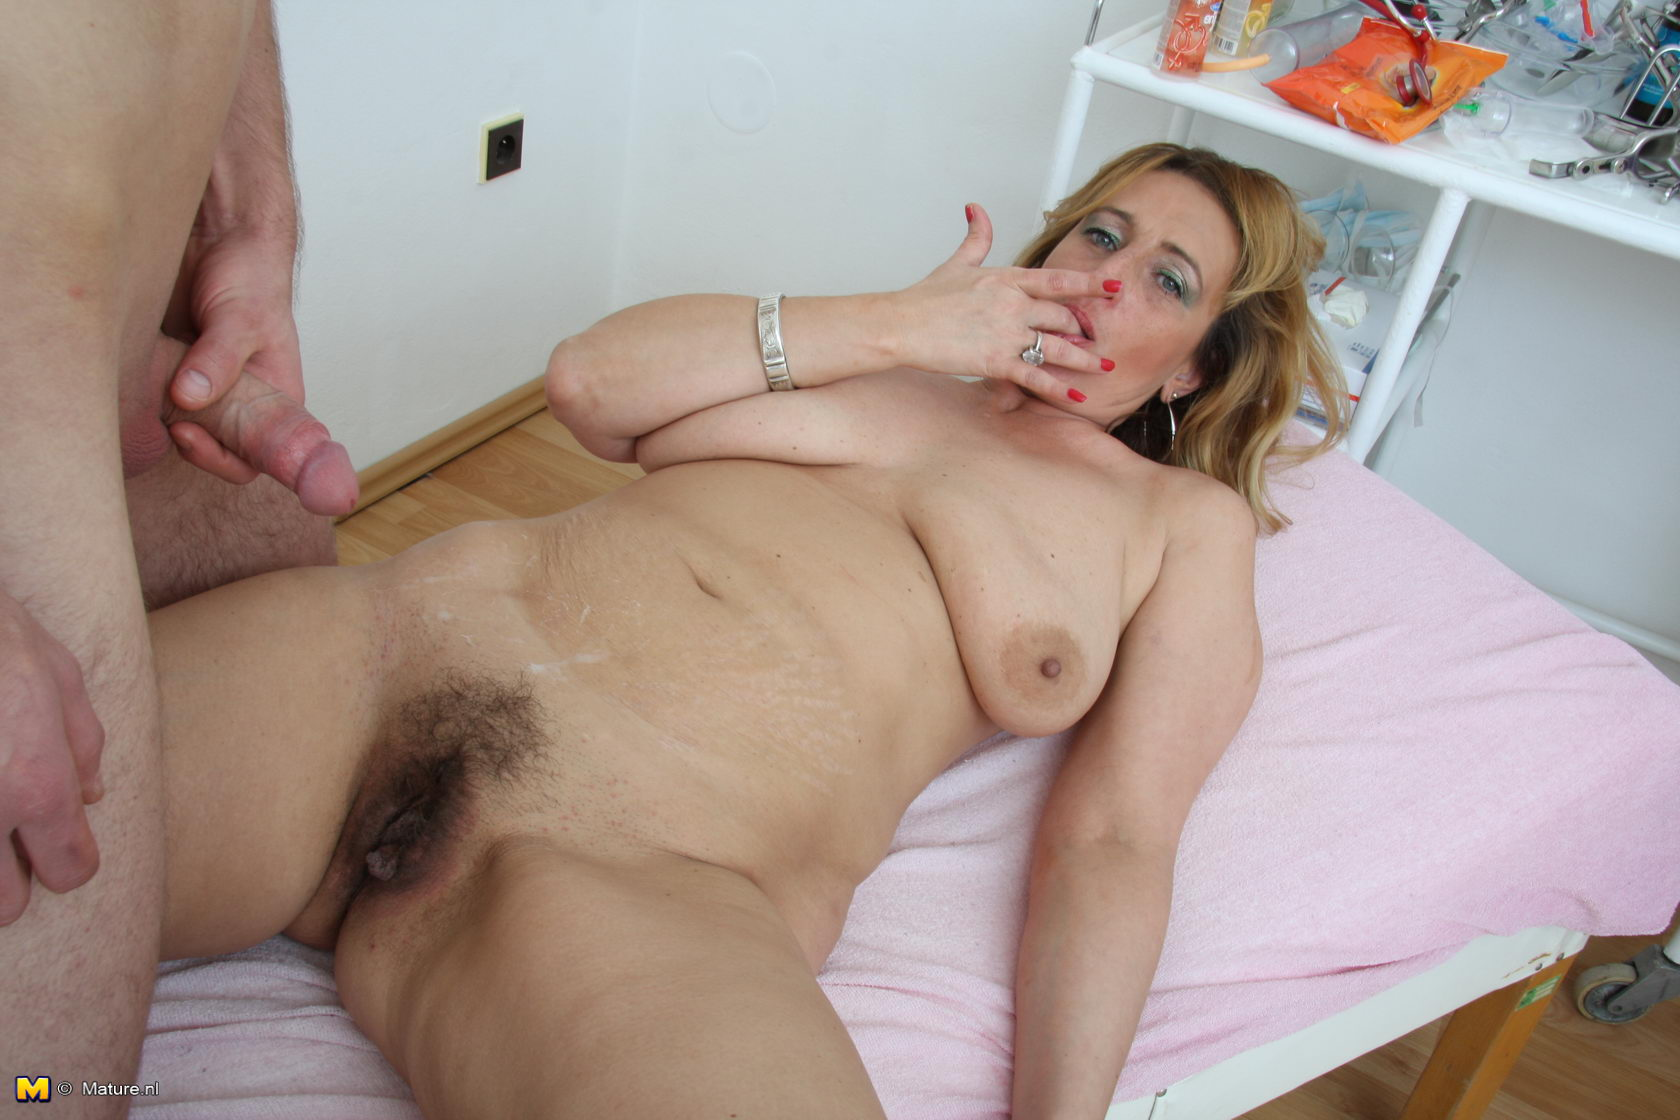 Naked thick white girl gettin fucked